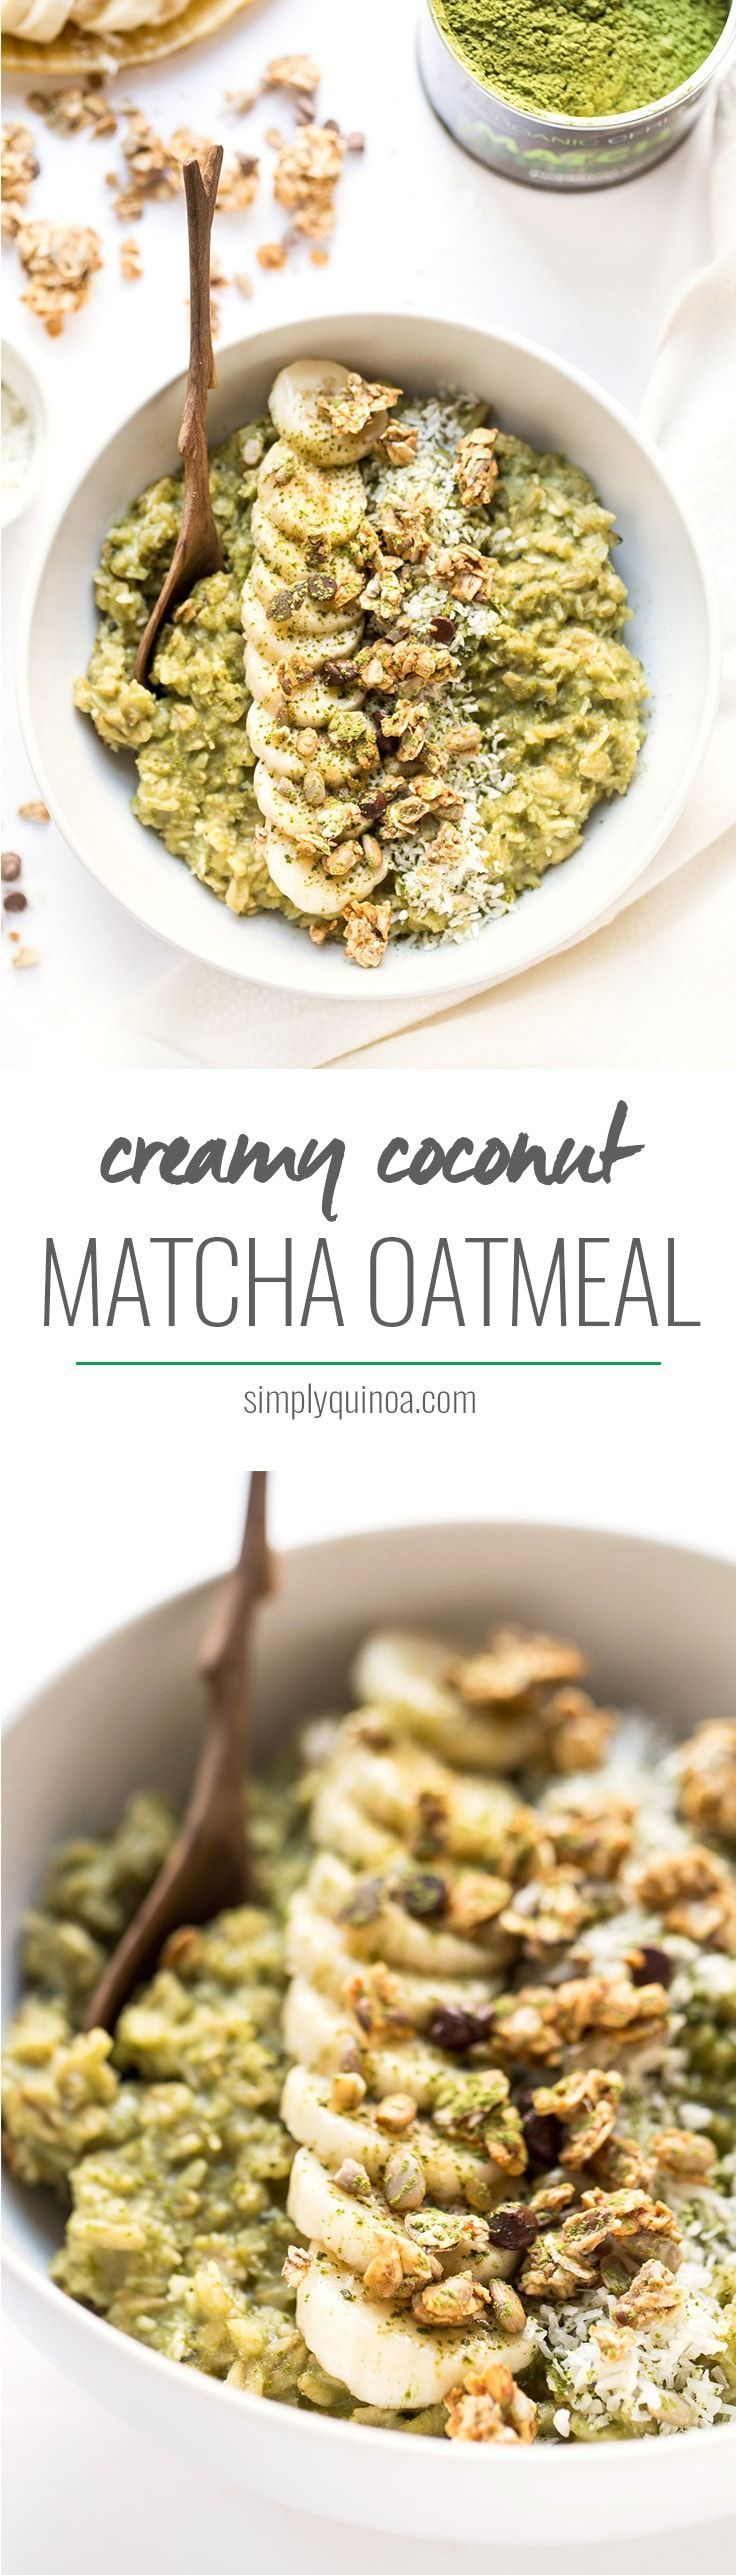 These Creamy Coconut Matcha Oatmeal bowls are the perfect, warming breakfast! Packed with antioxidants and fiber, it's the perfect way to start your day!